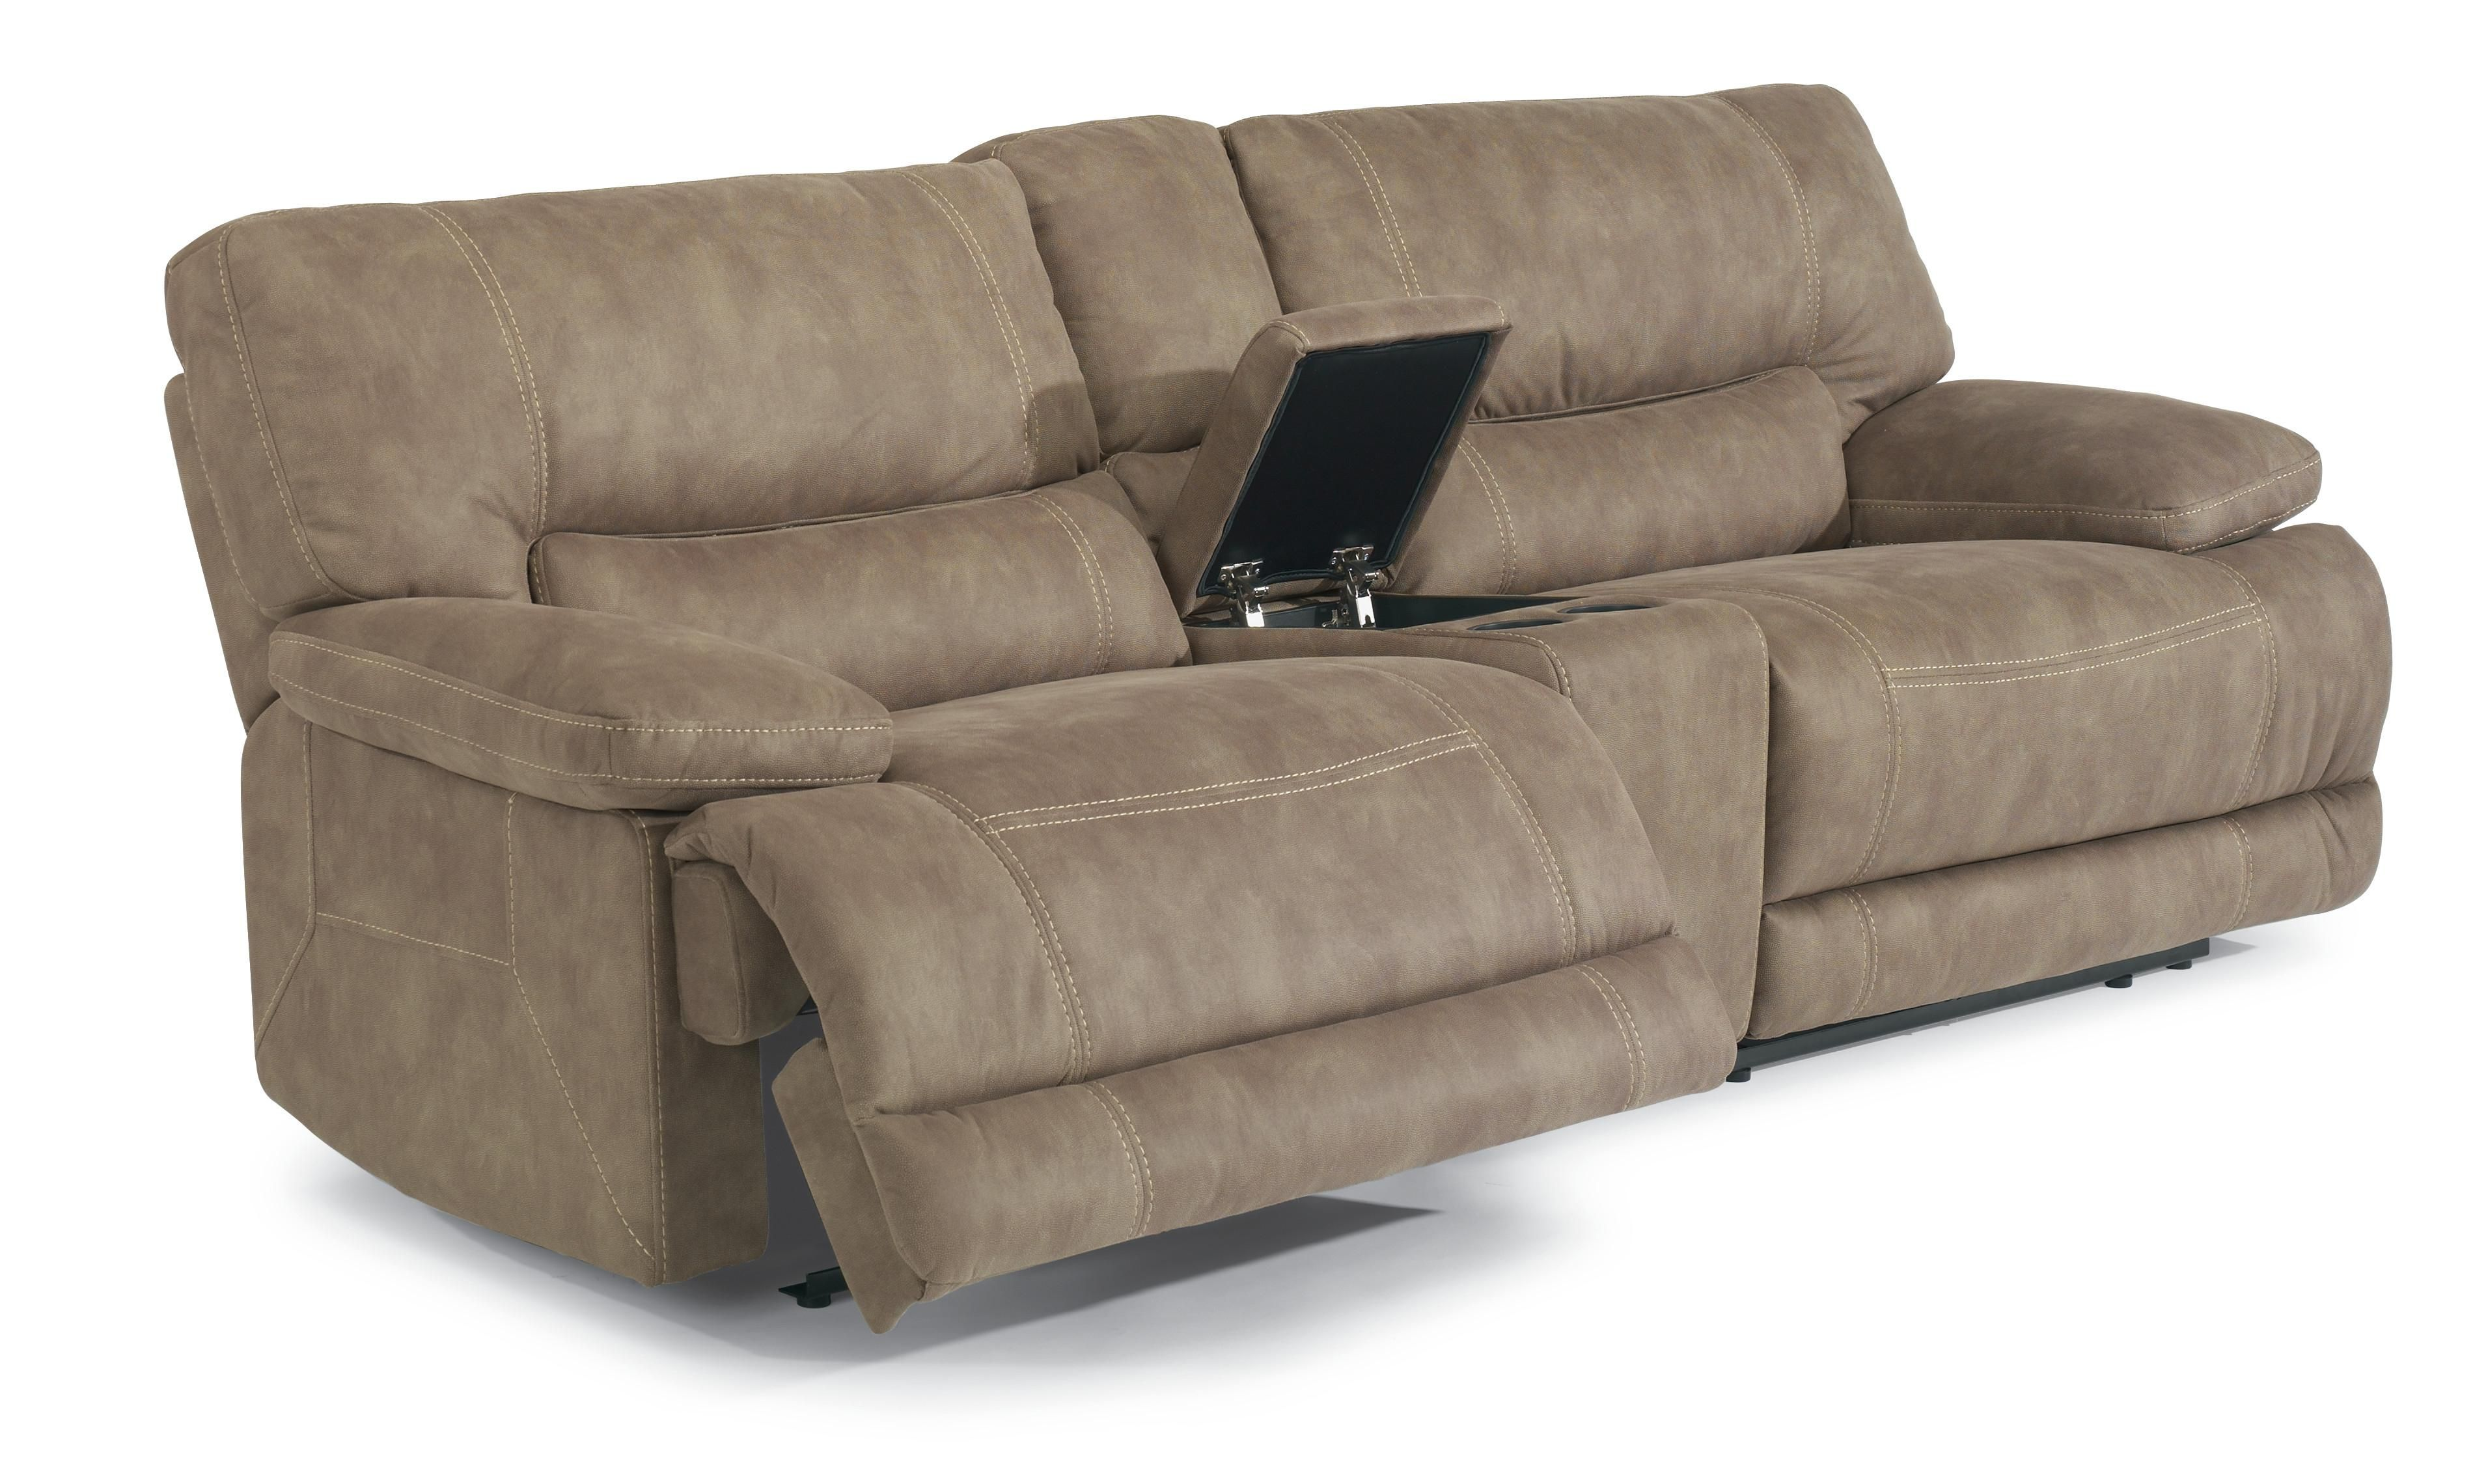 Latitudes Delia Power Reclining Sectional Sofa by